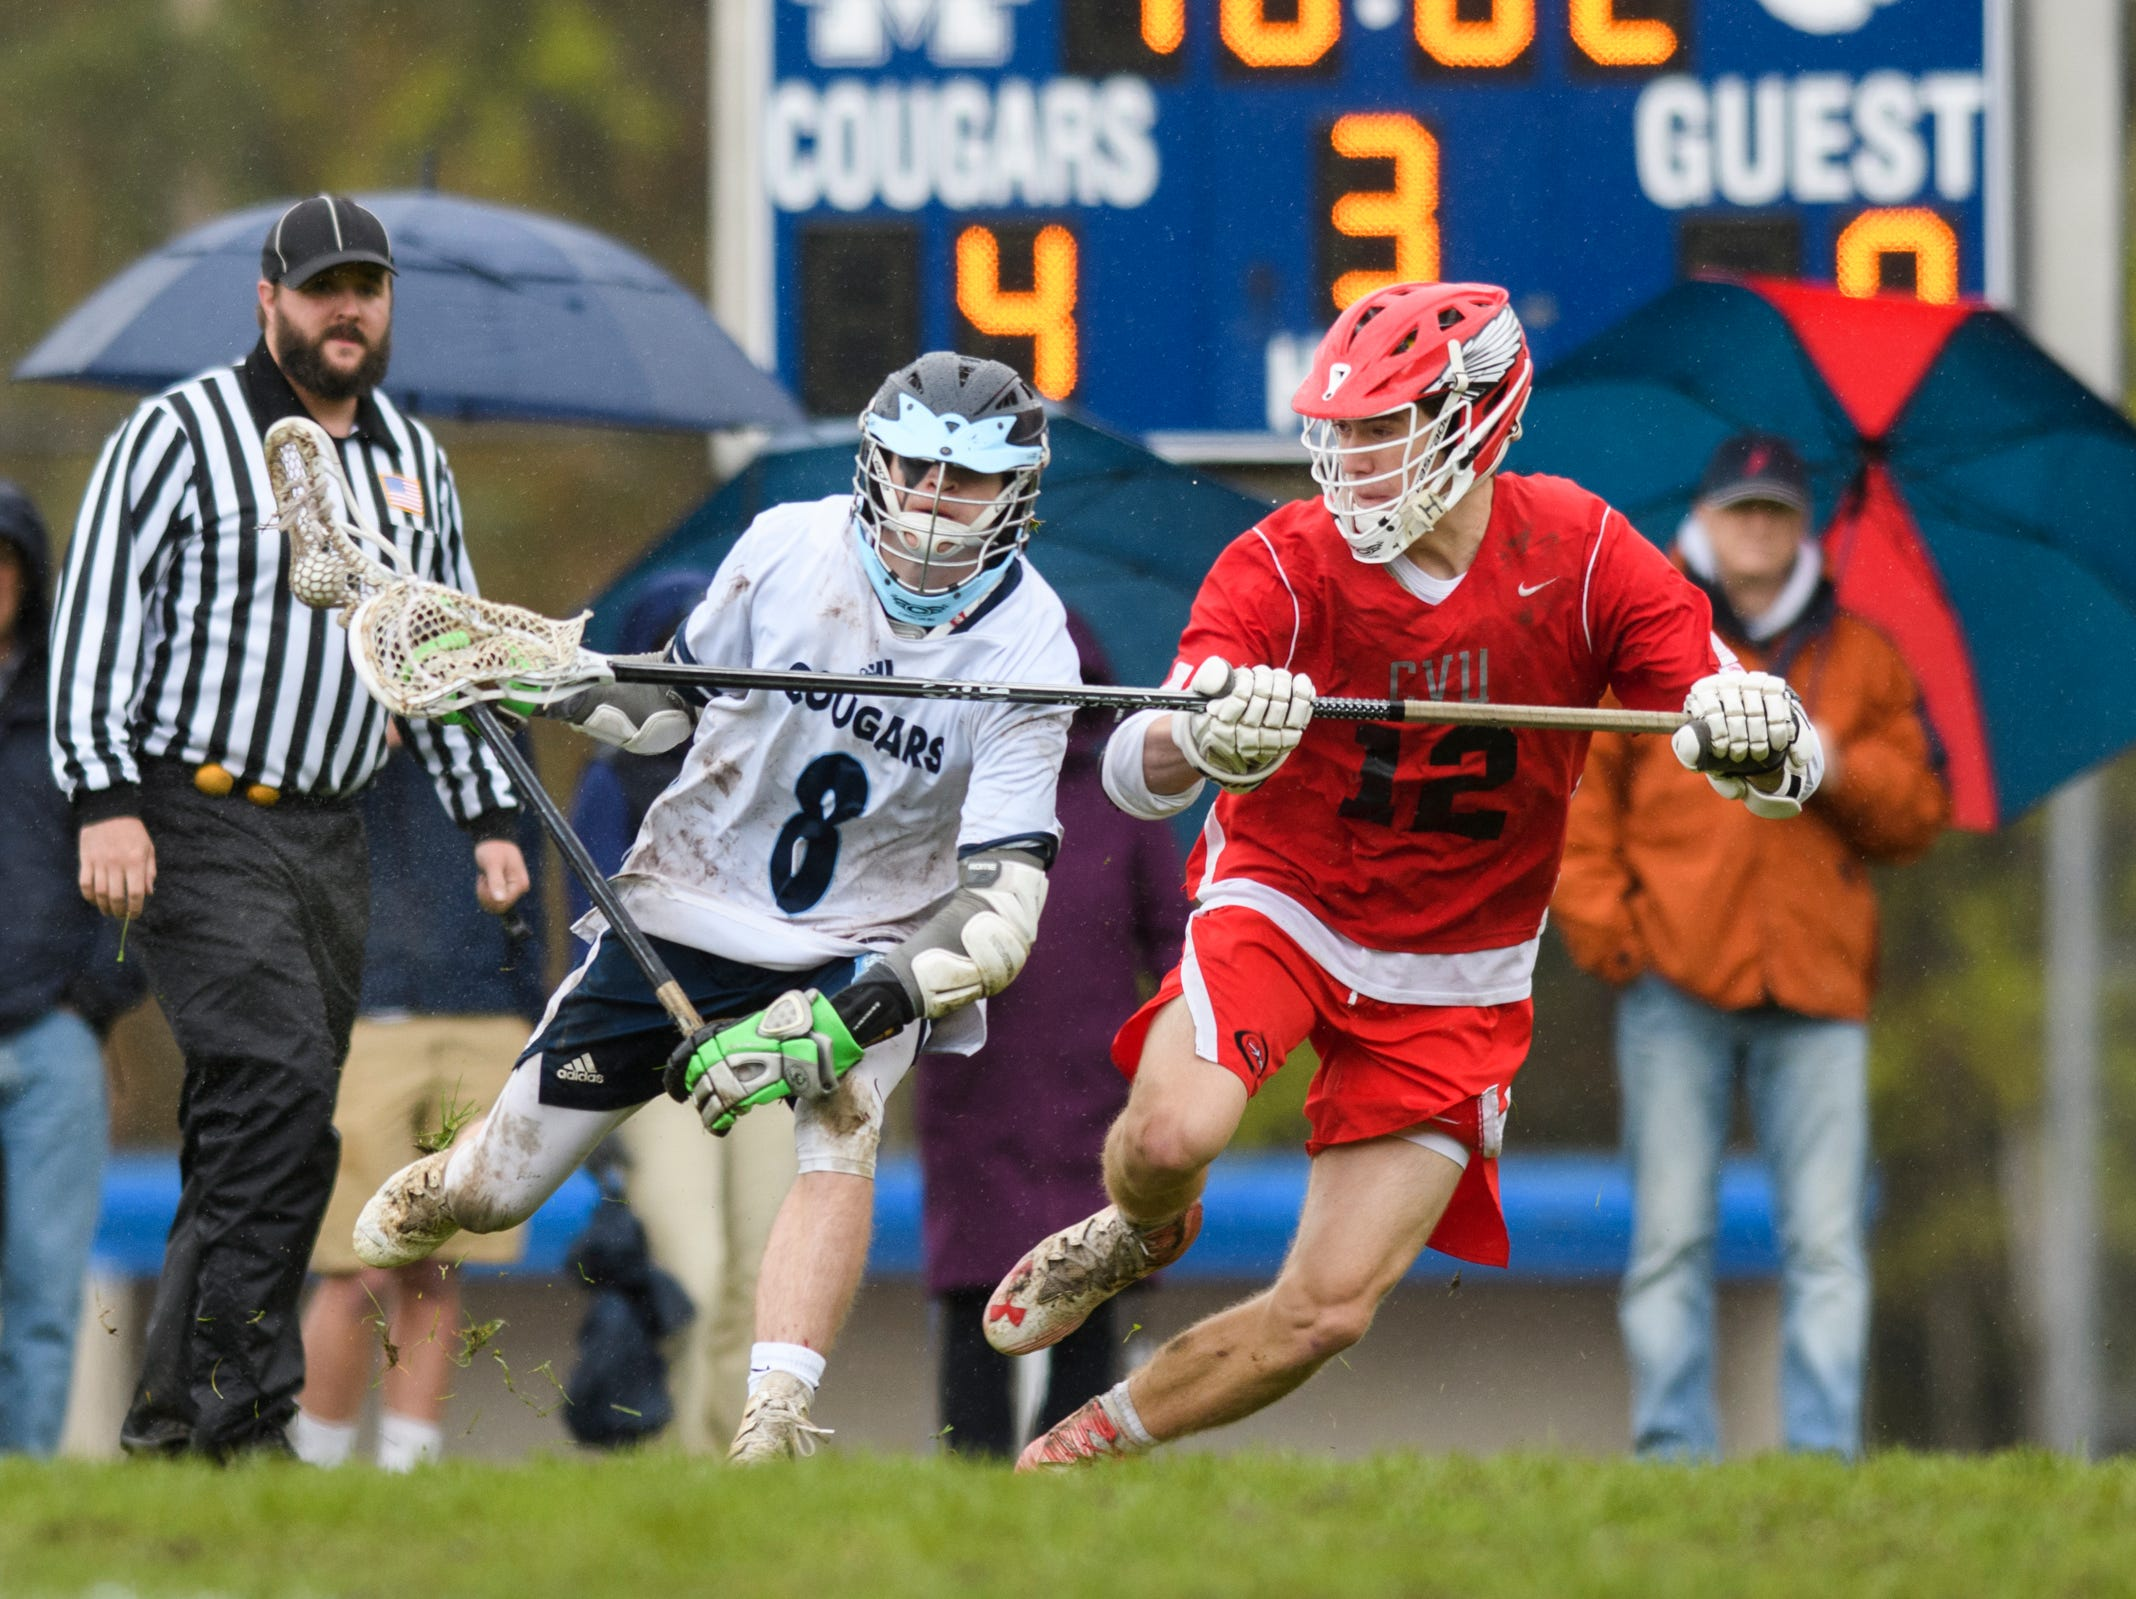 MMU's Teddy Waite (8) tries to run past CVU's Aidan Trus (12) with the ball during the boys lacrosse game between the Champlain Valley Union Redhawks and the Mount Mansfield Cougars at MMU High School on Tuesday afternoon May 14, 2019 in Jericho, Vermont.